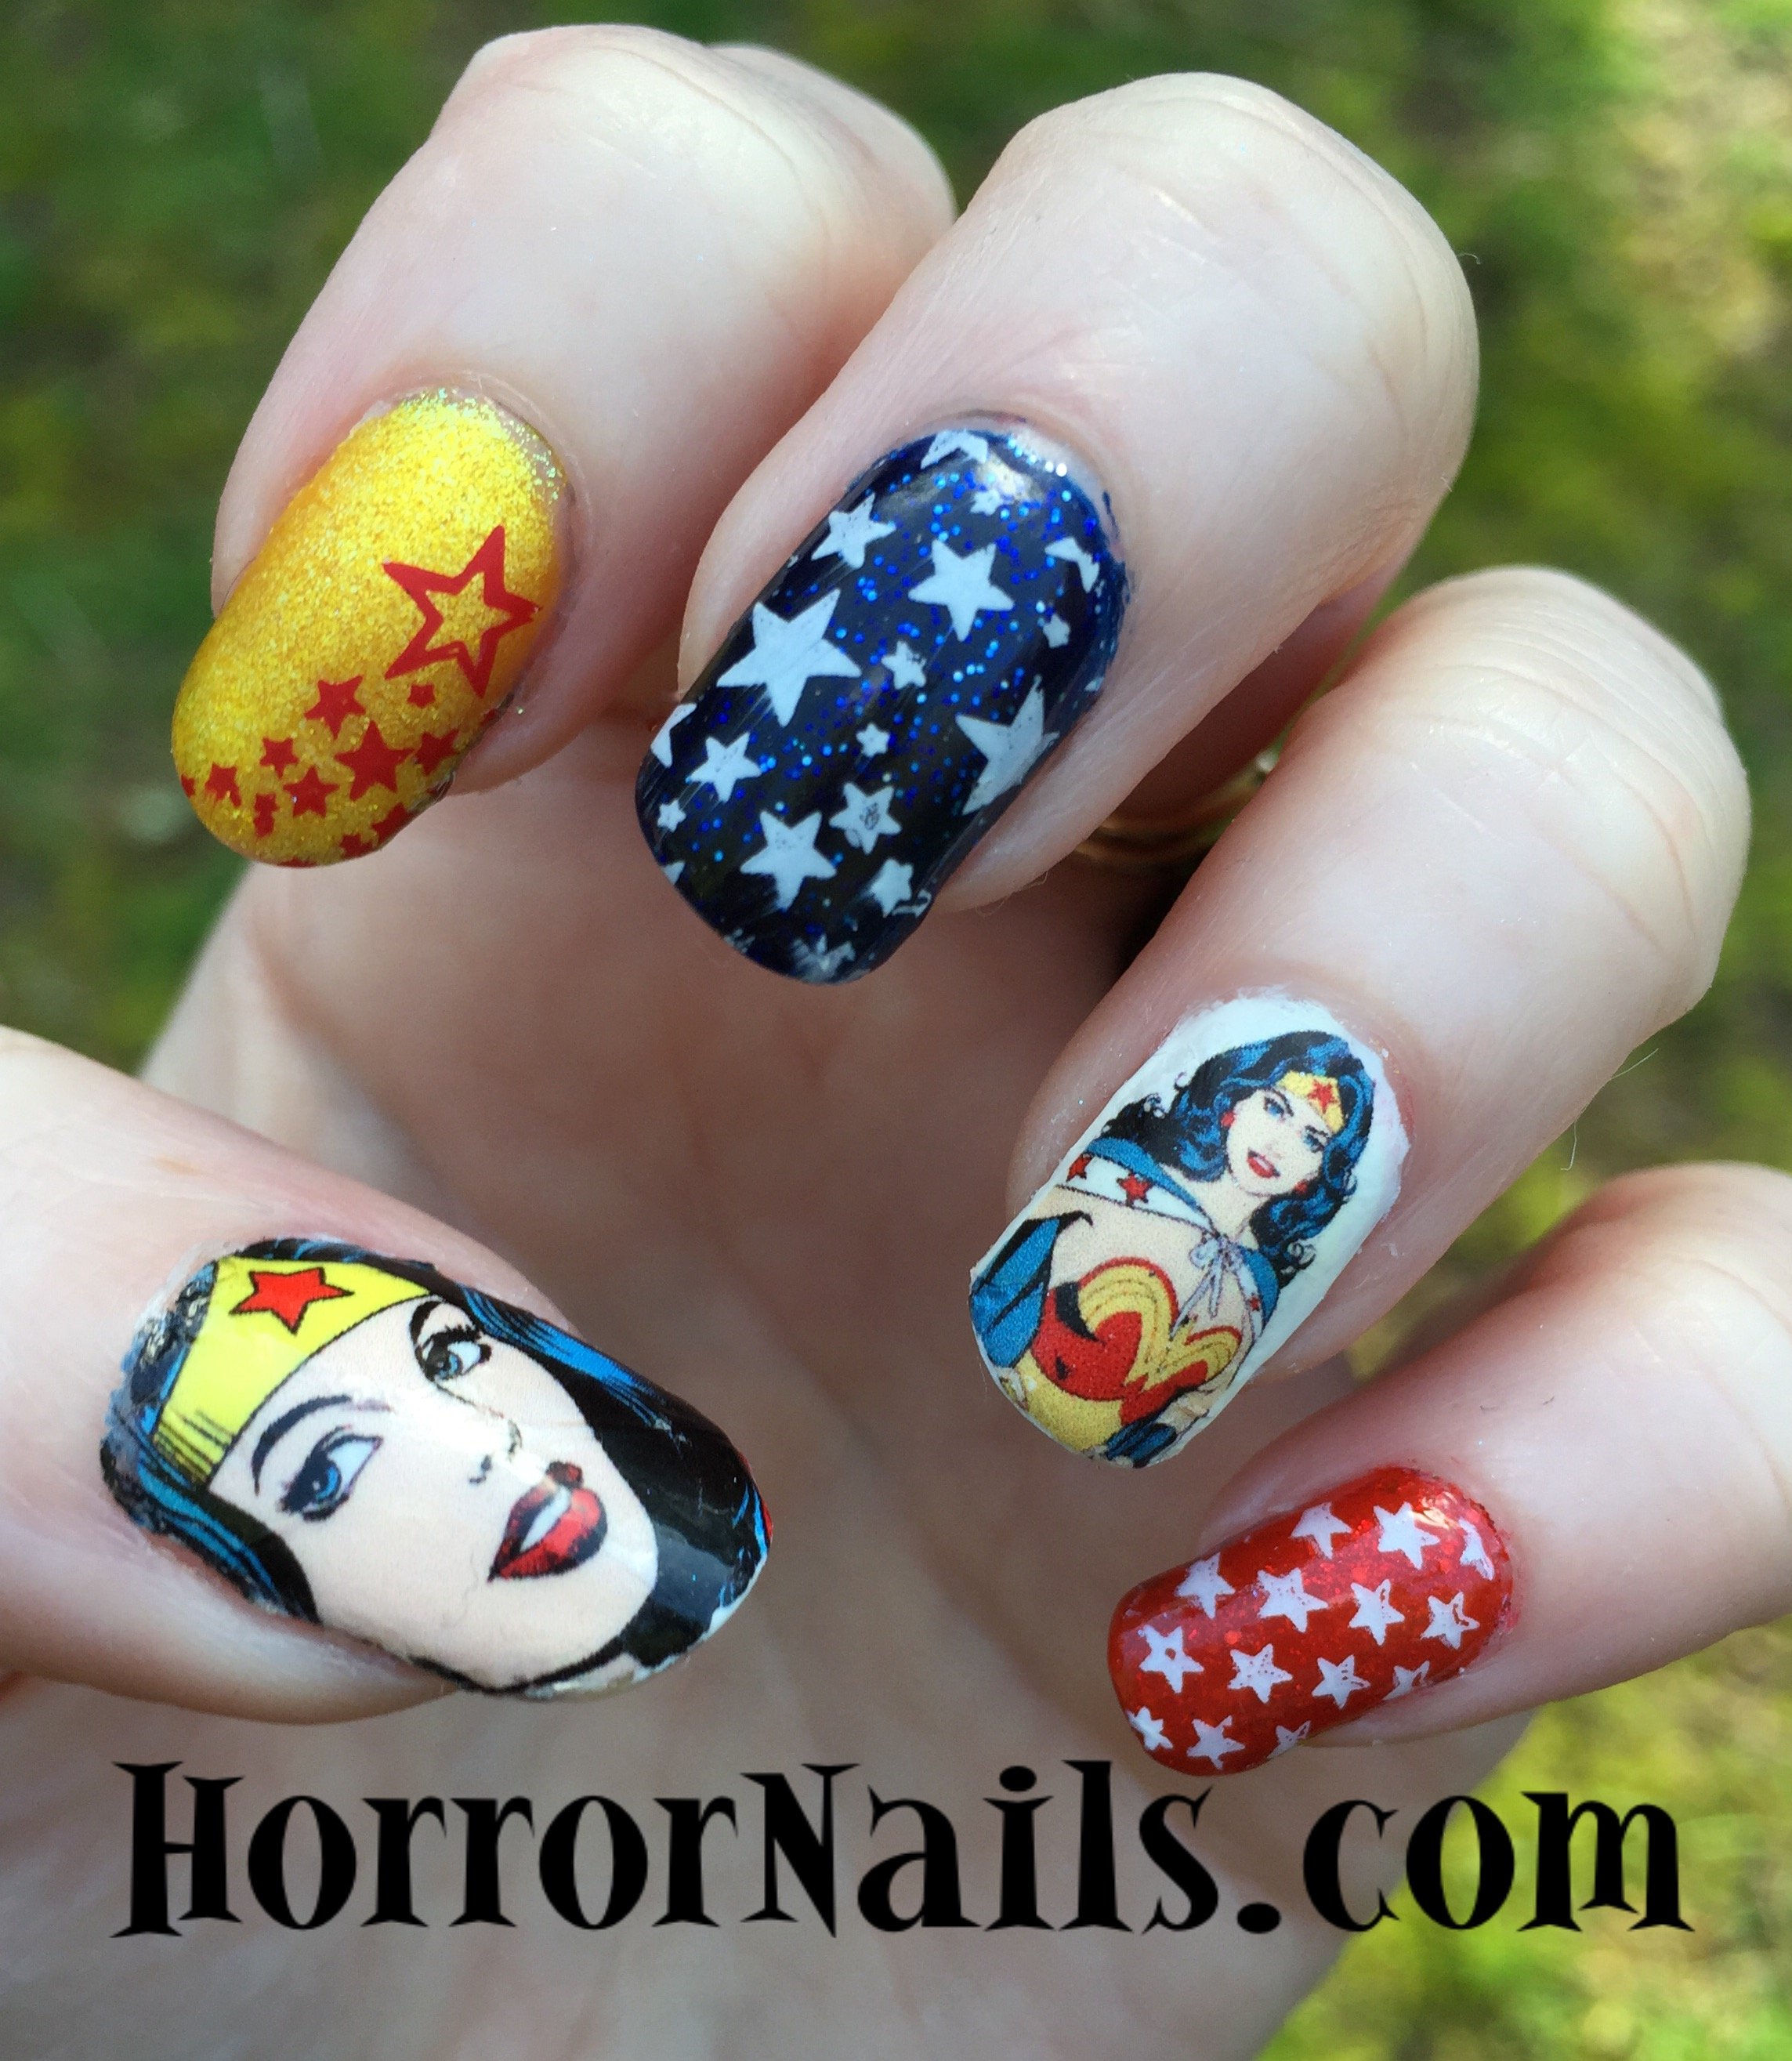 Wonder Woman Nail Art by Horror Nails